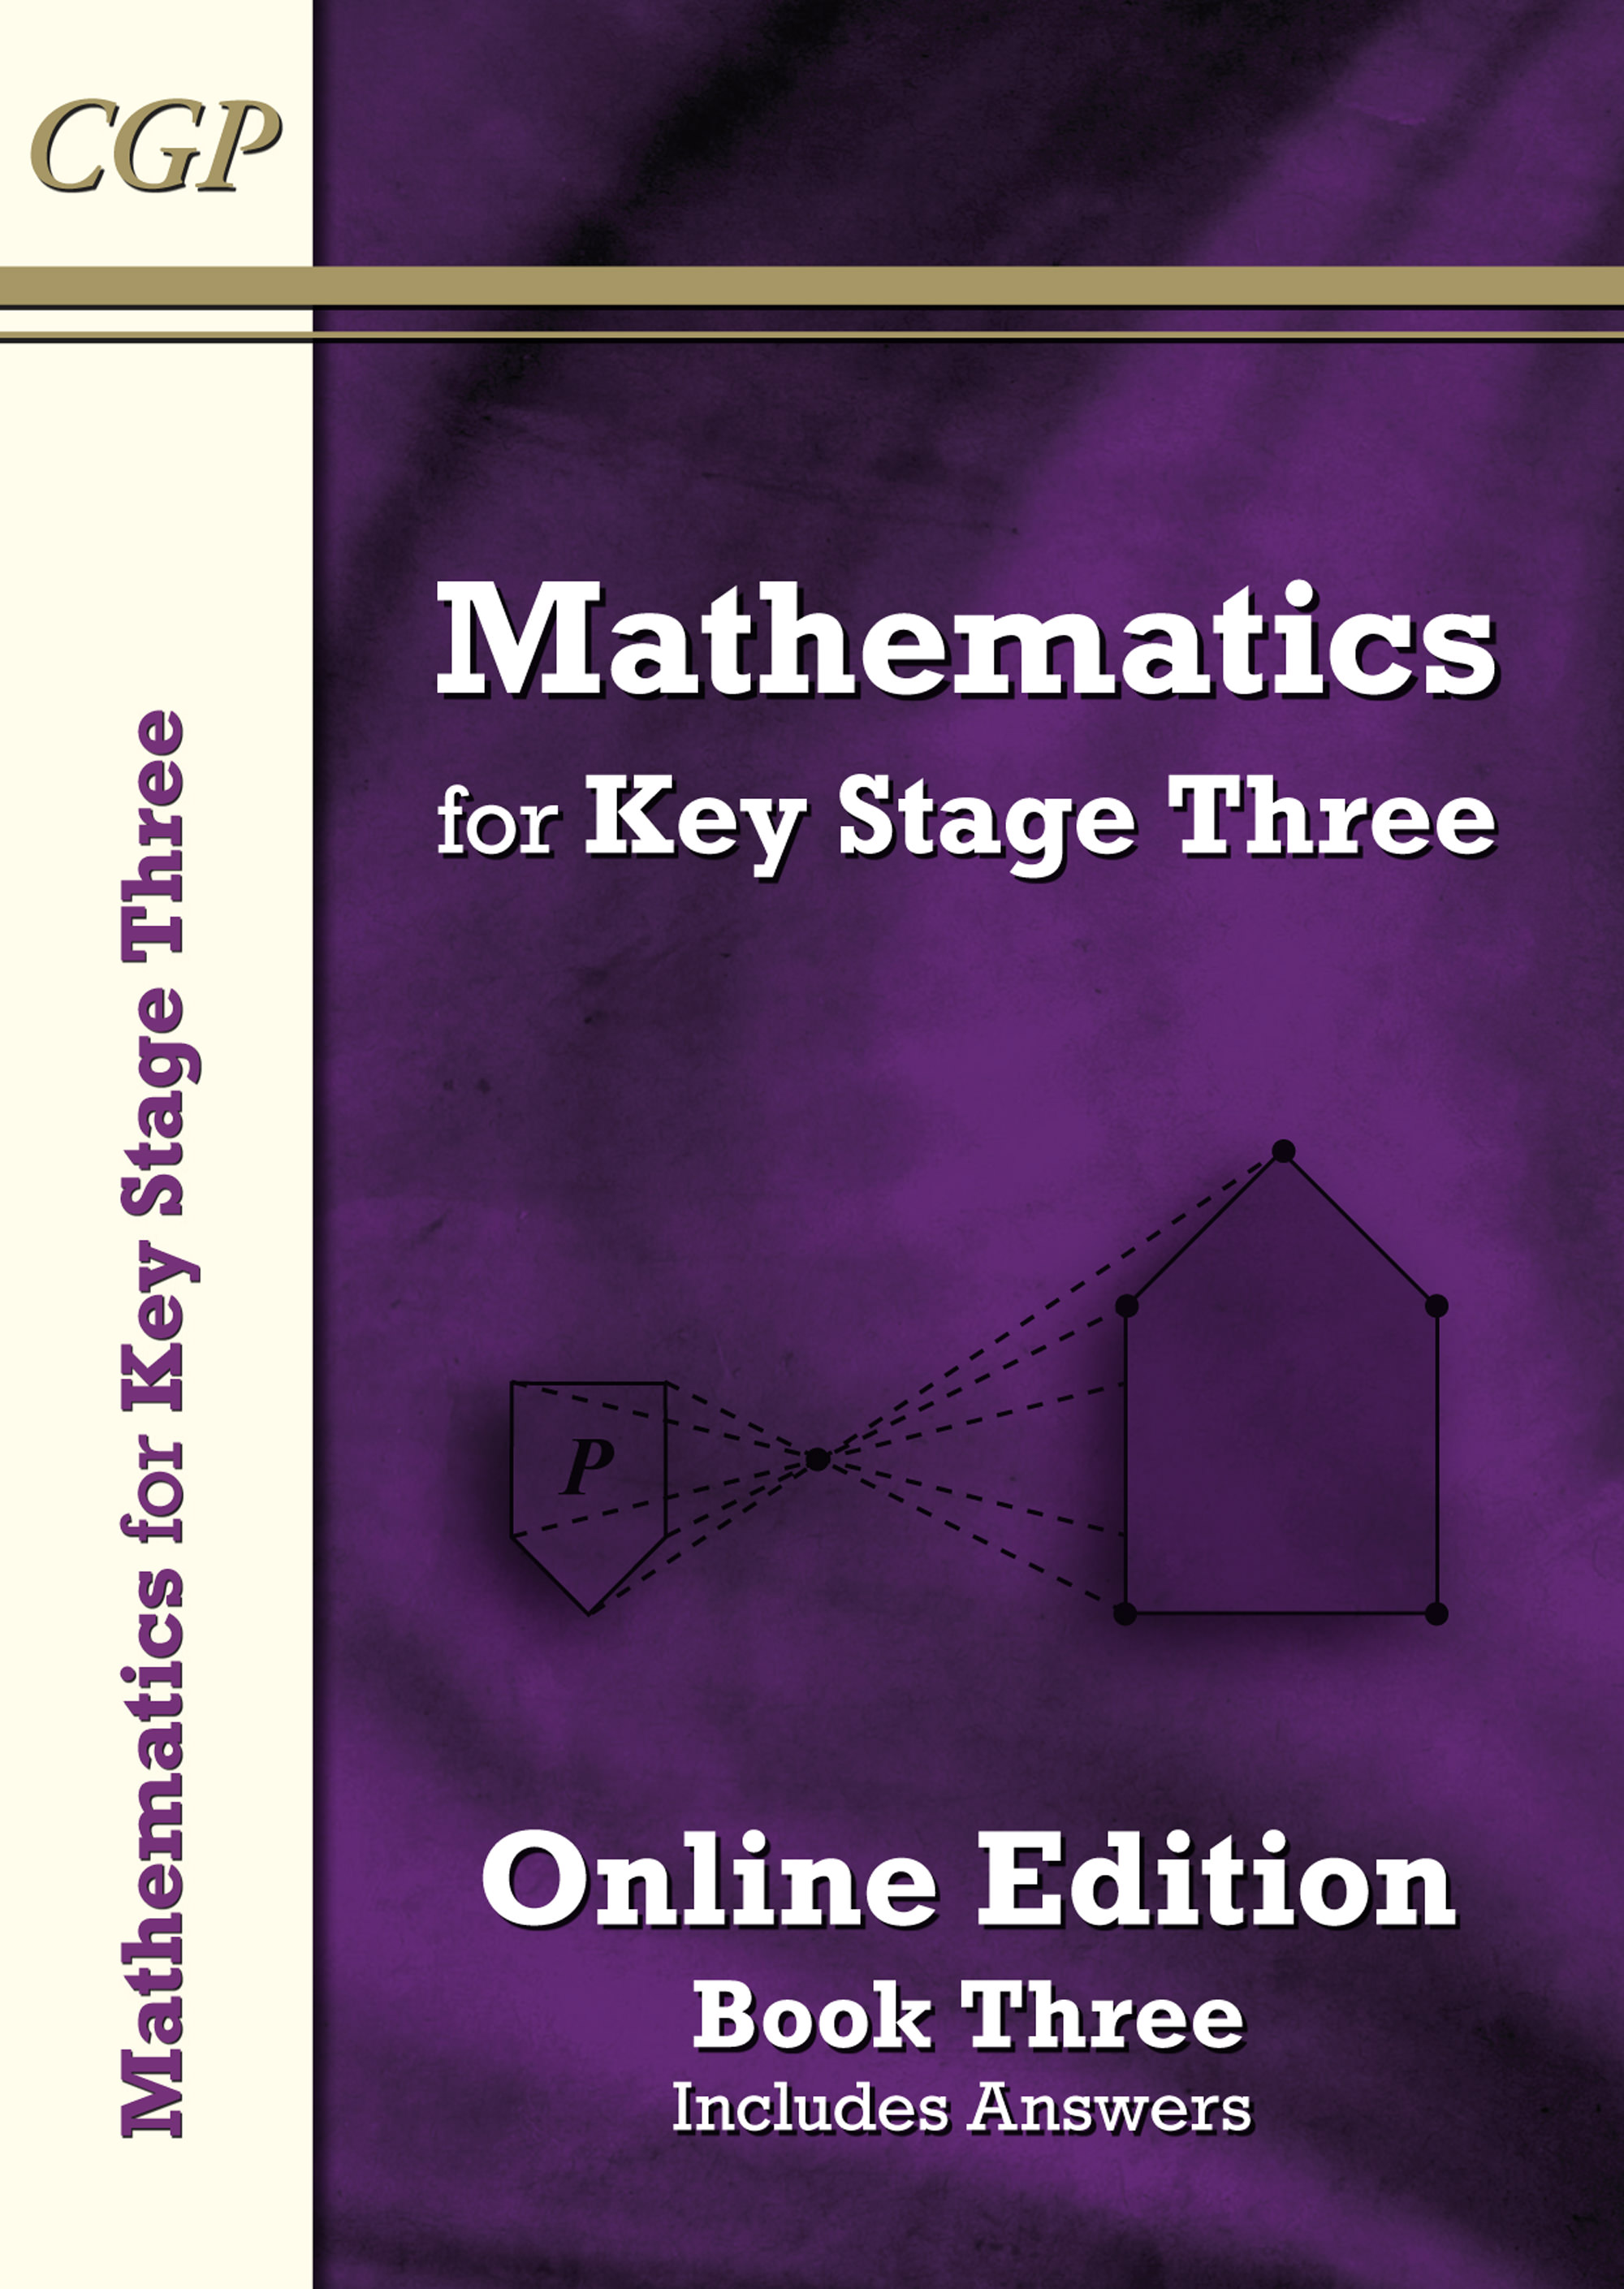 ks3 maths textbook 3  student online edition  with answers